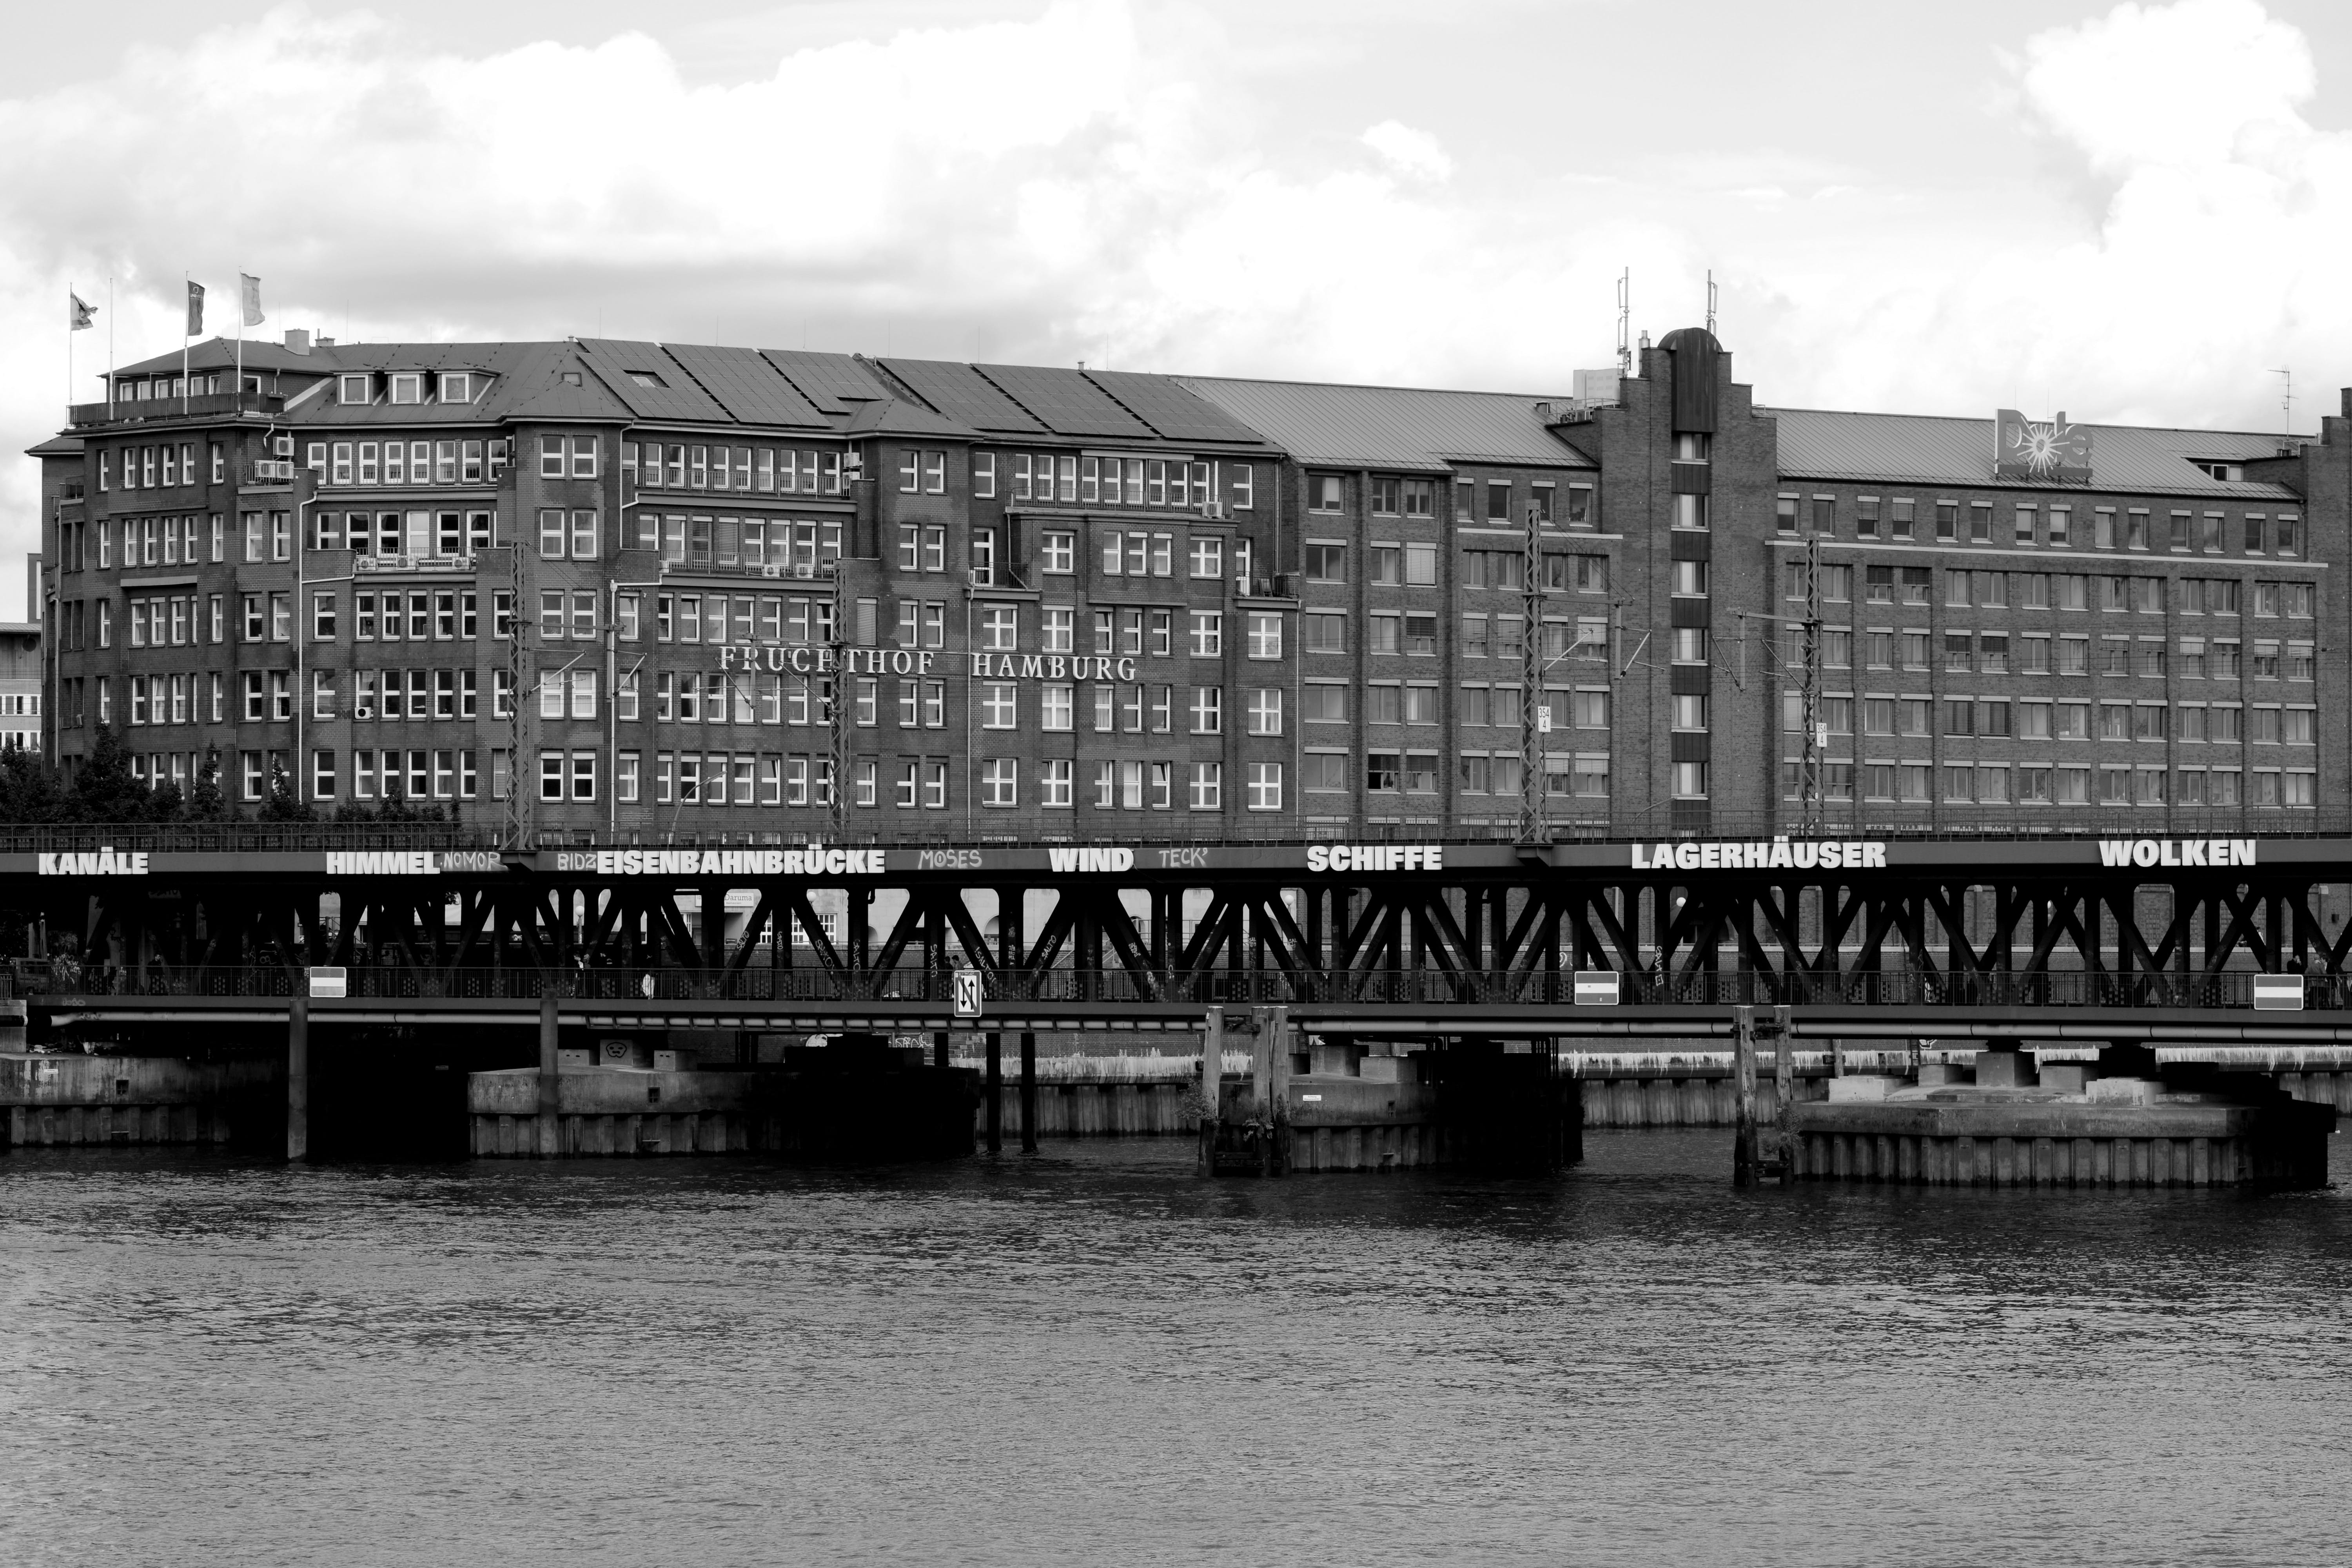 Grayscale Photo of Mid Rise Building Near Body of Water at Daytime